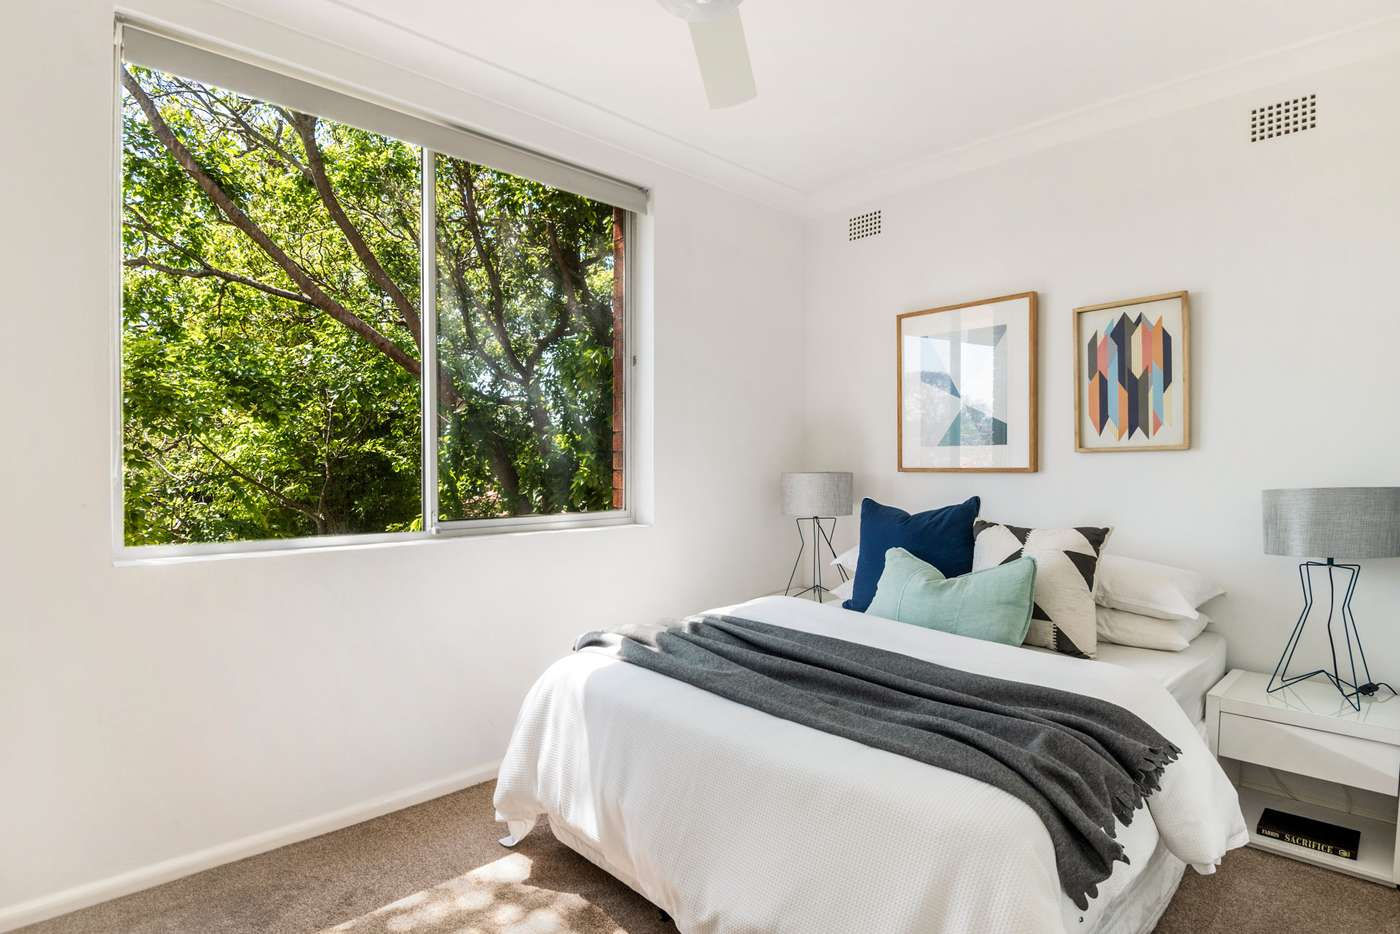 Sixth view of Homely apartment listing, 6/160 Raglan Street, Mosman NSW 2088